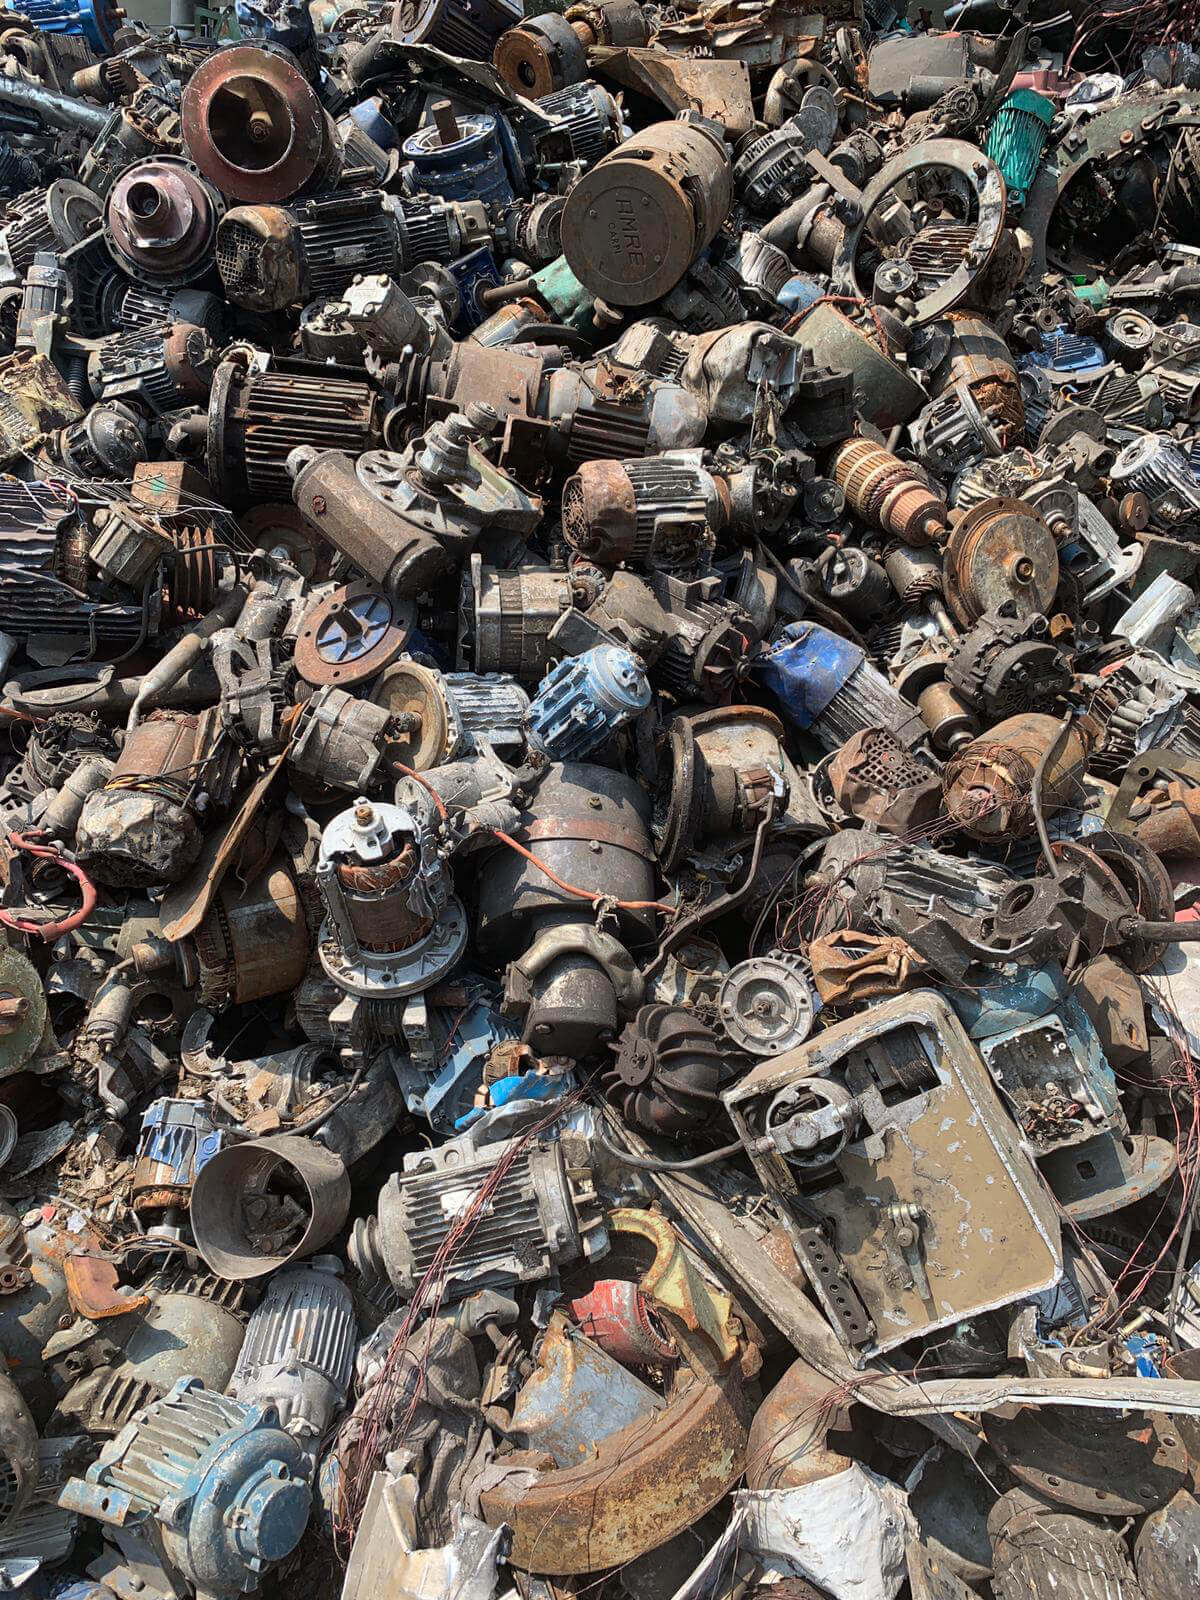 Aluminium Body Motor Scrap In Bosnia and Herzegovina